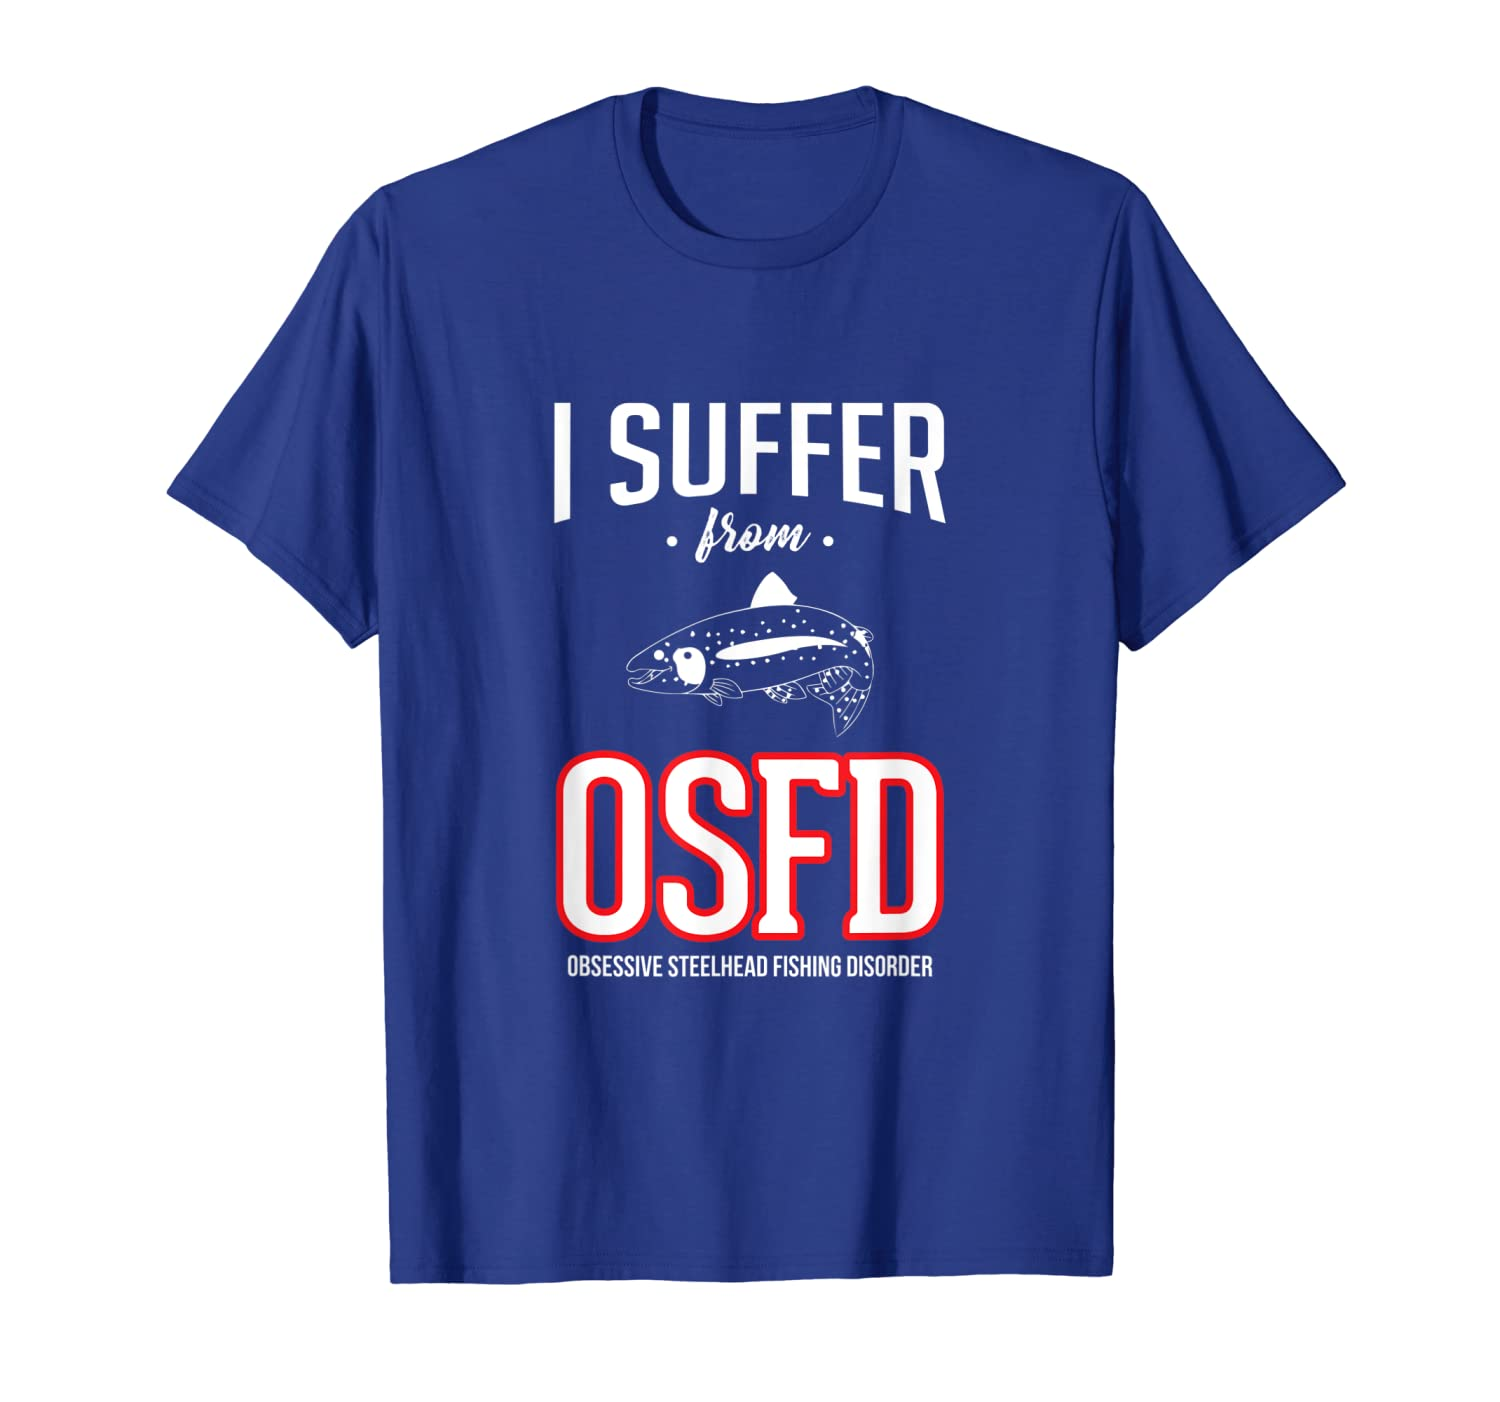 Steelhead Fishing Shirt Obsessive Fishing Disorder Tee Unisex Tshirt